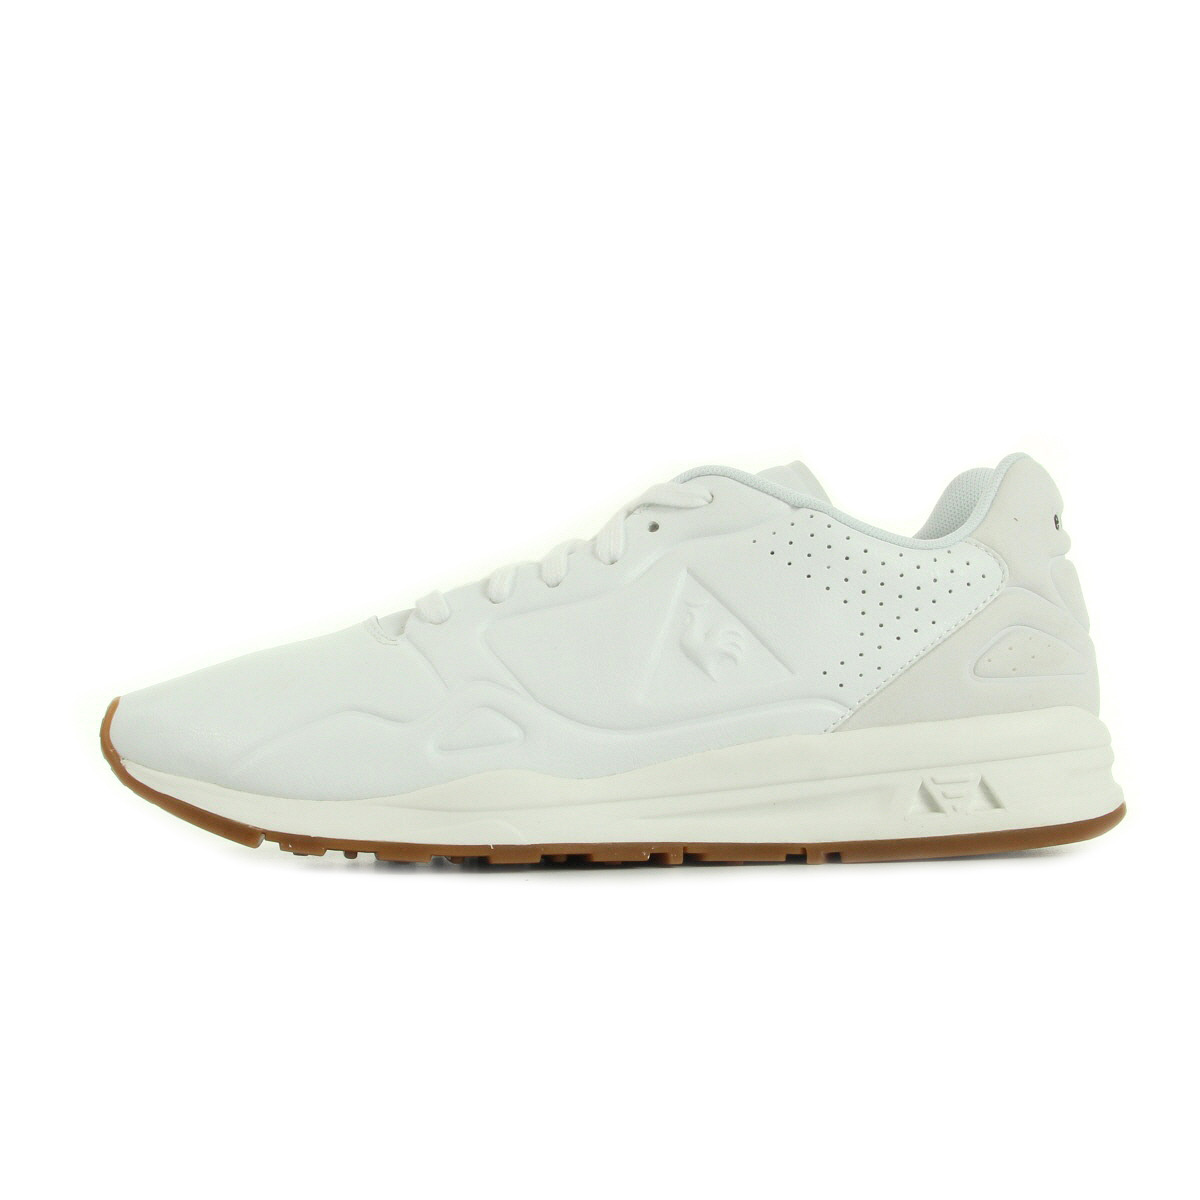 Le Coq Sportif LCS R9XX S Leather Optical White 1620185, Baskets mode